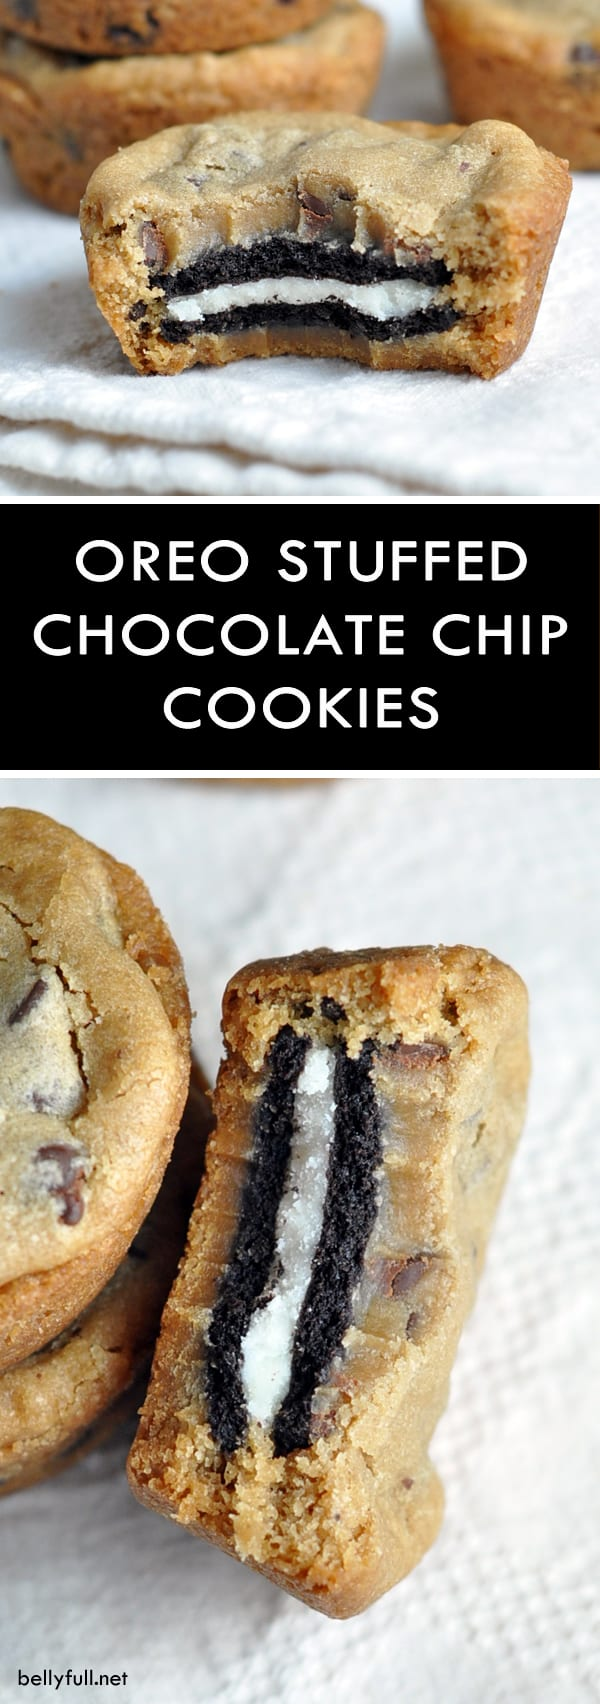 These Oreo Stuffed Chocolate Chip Cookies are double stuffed Oreo cookies sandwiched in between two chocolate chip cookies. The BEST cookies ever!